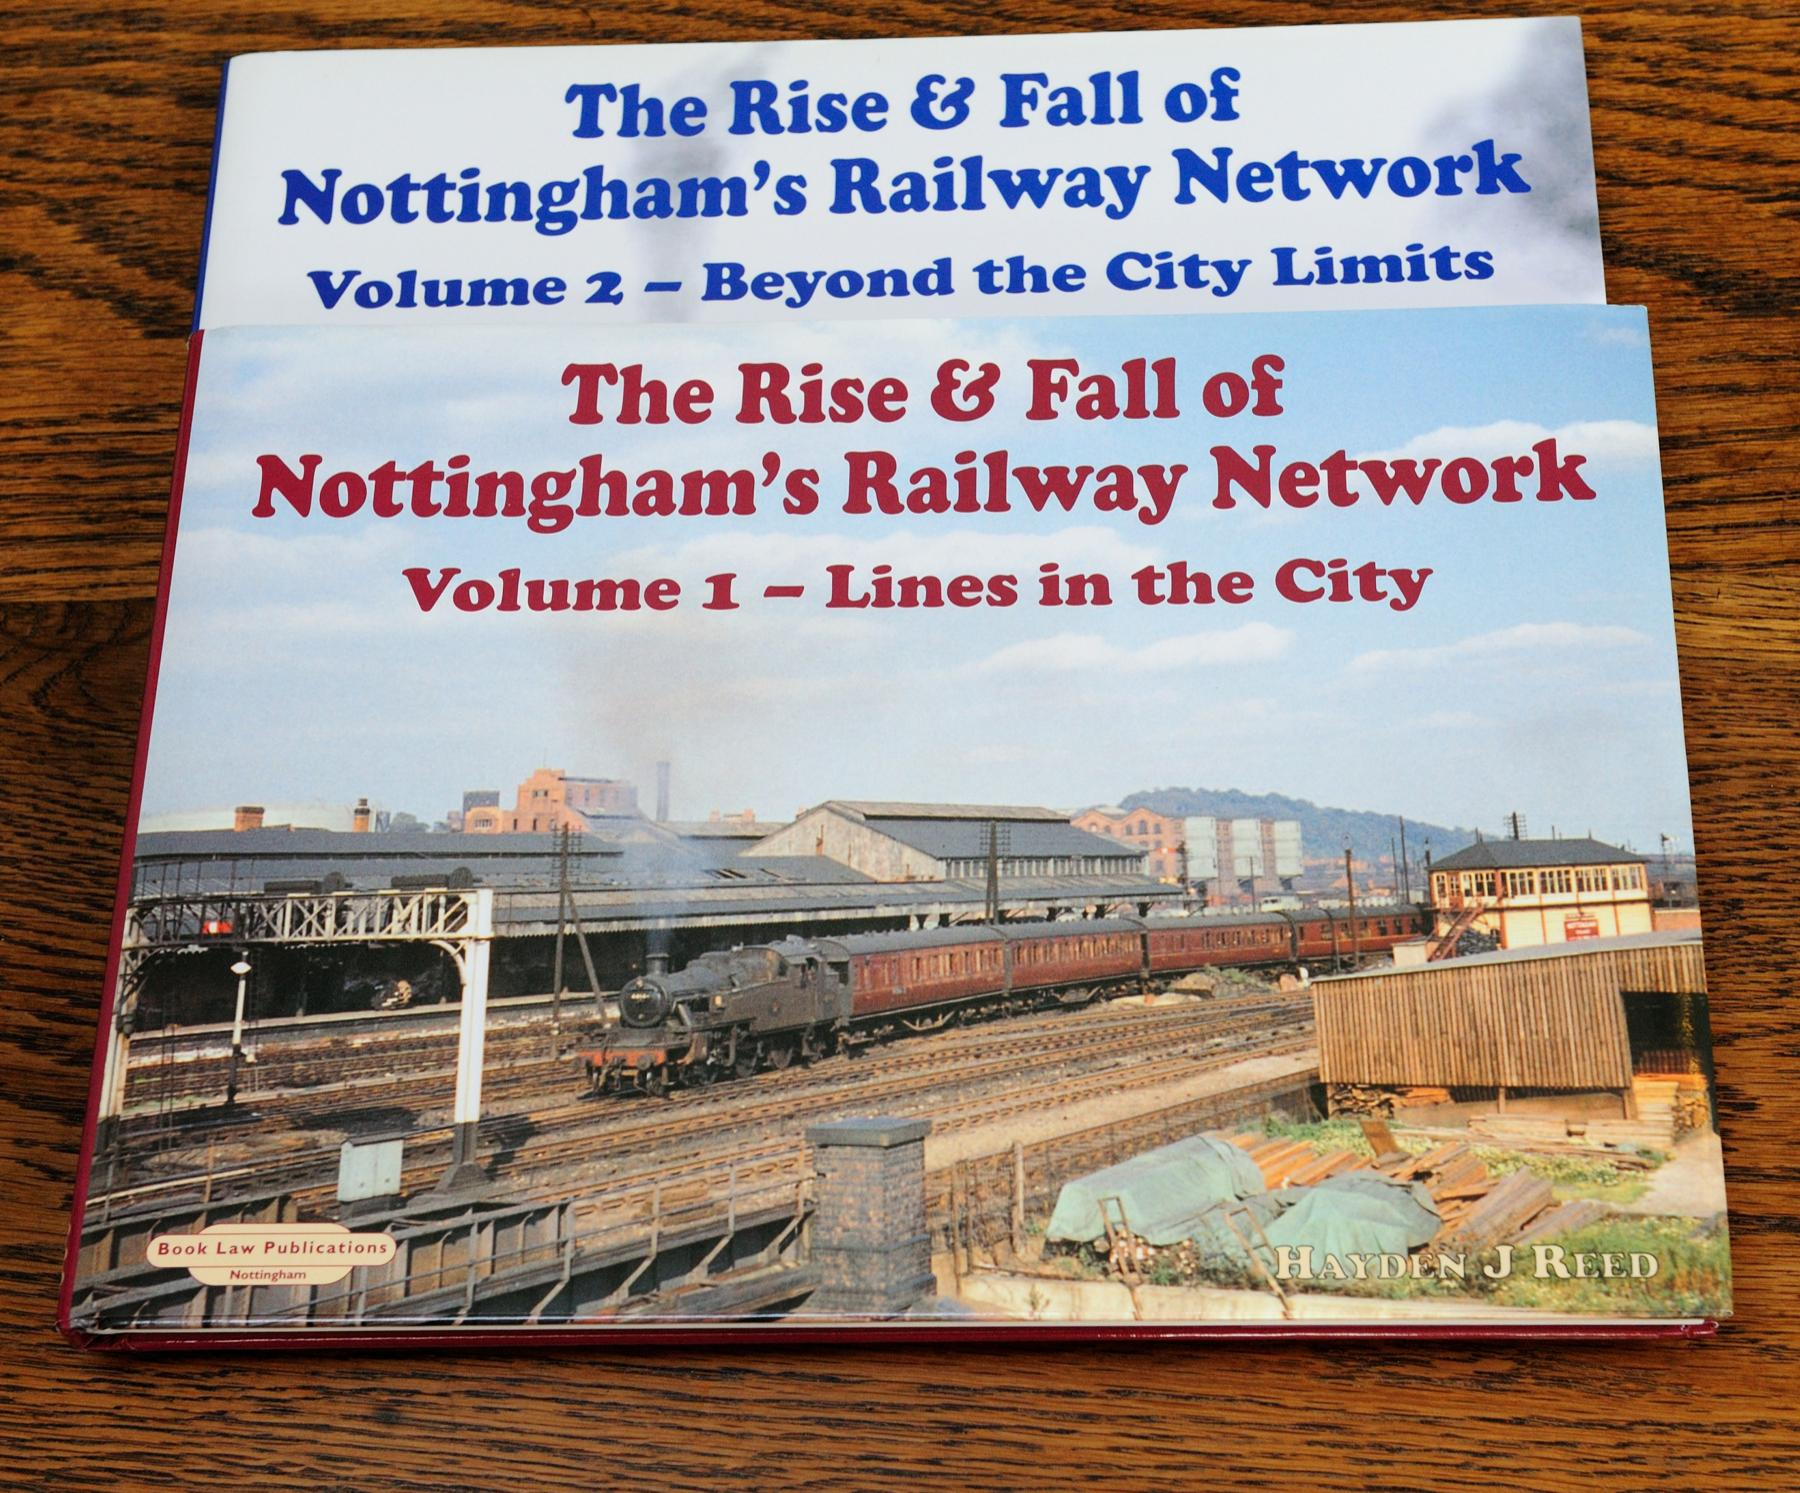 The Rise & Fall of Nottingham's Railway Network Vols I & II